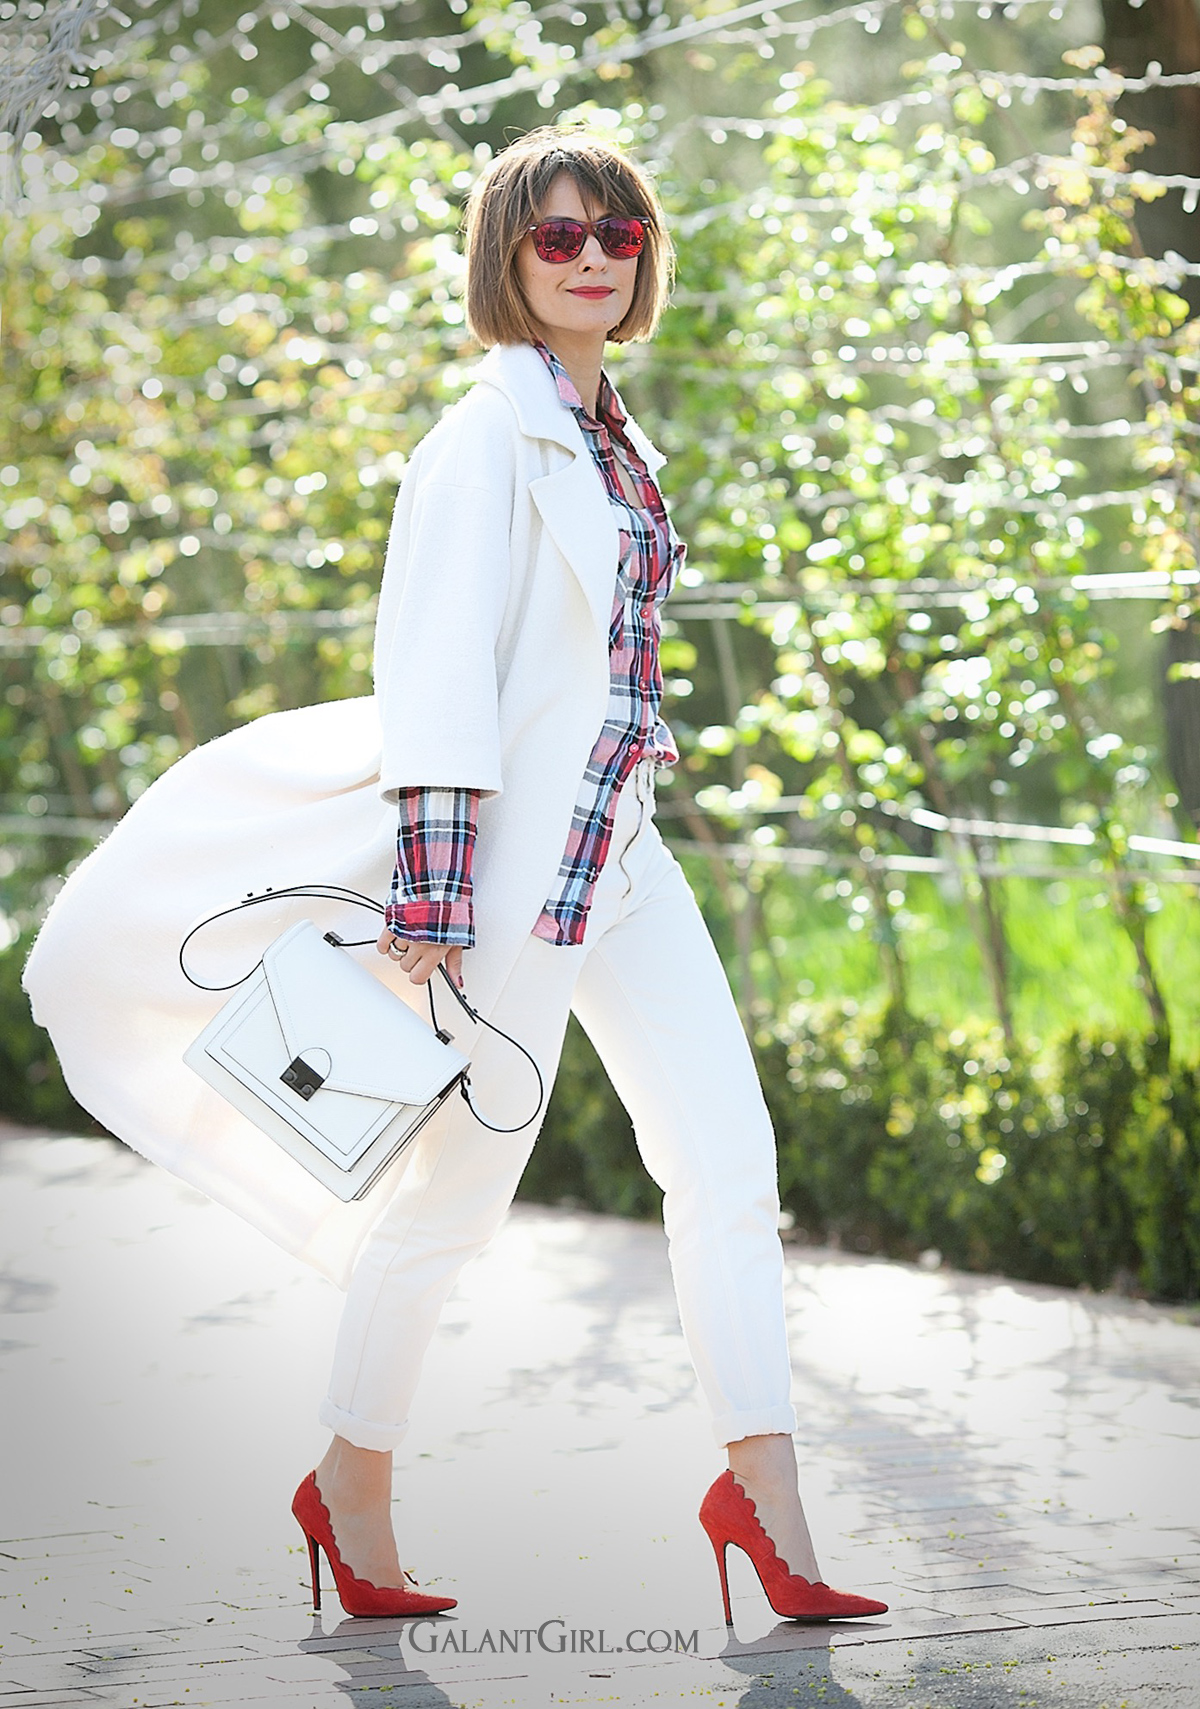 total white street style outfit with LOEFFLER RANDALL bag on galantGirl.com for editorial